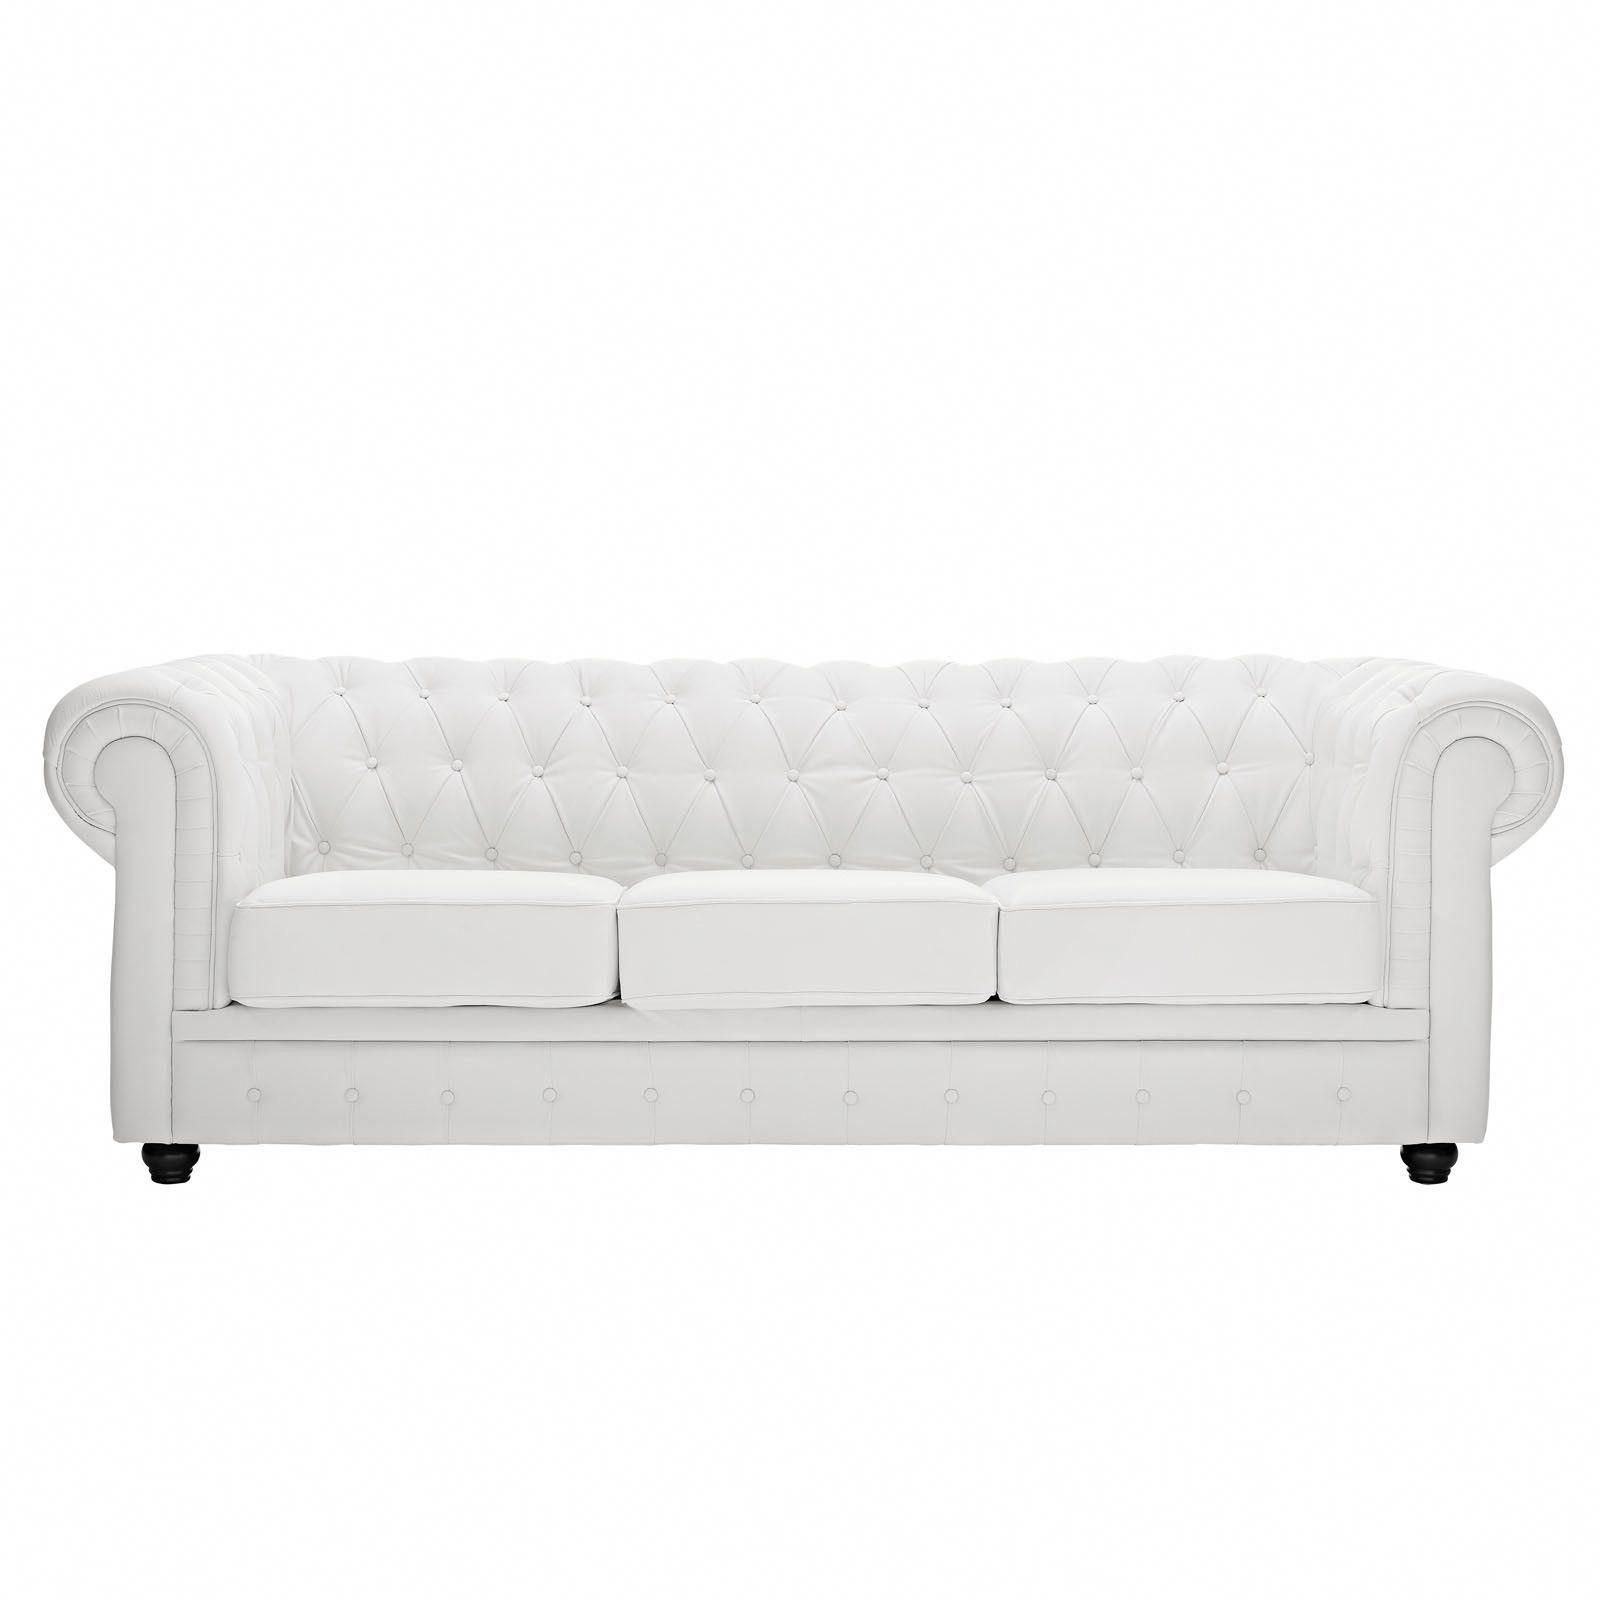 Fantastic Chesterfield Sofa White A Few Black Leather Sofa Ideas In Gamerscity Chair Design For Home Gamerscityorg